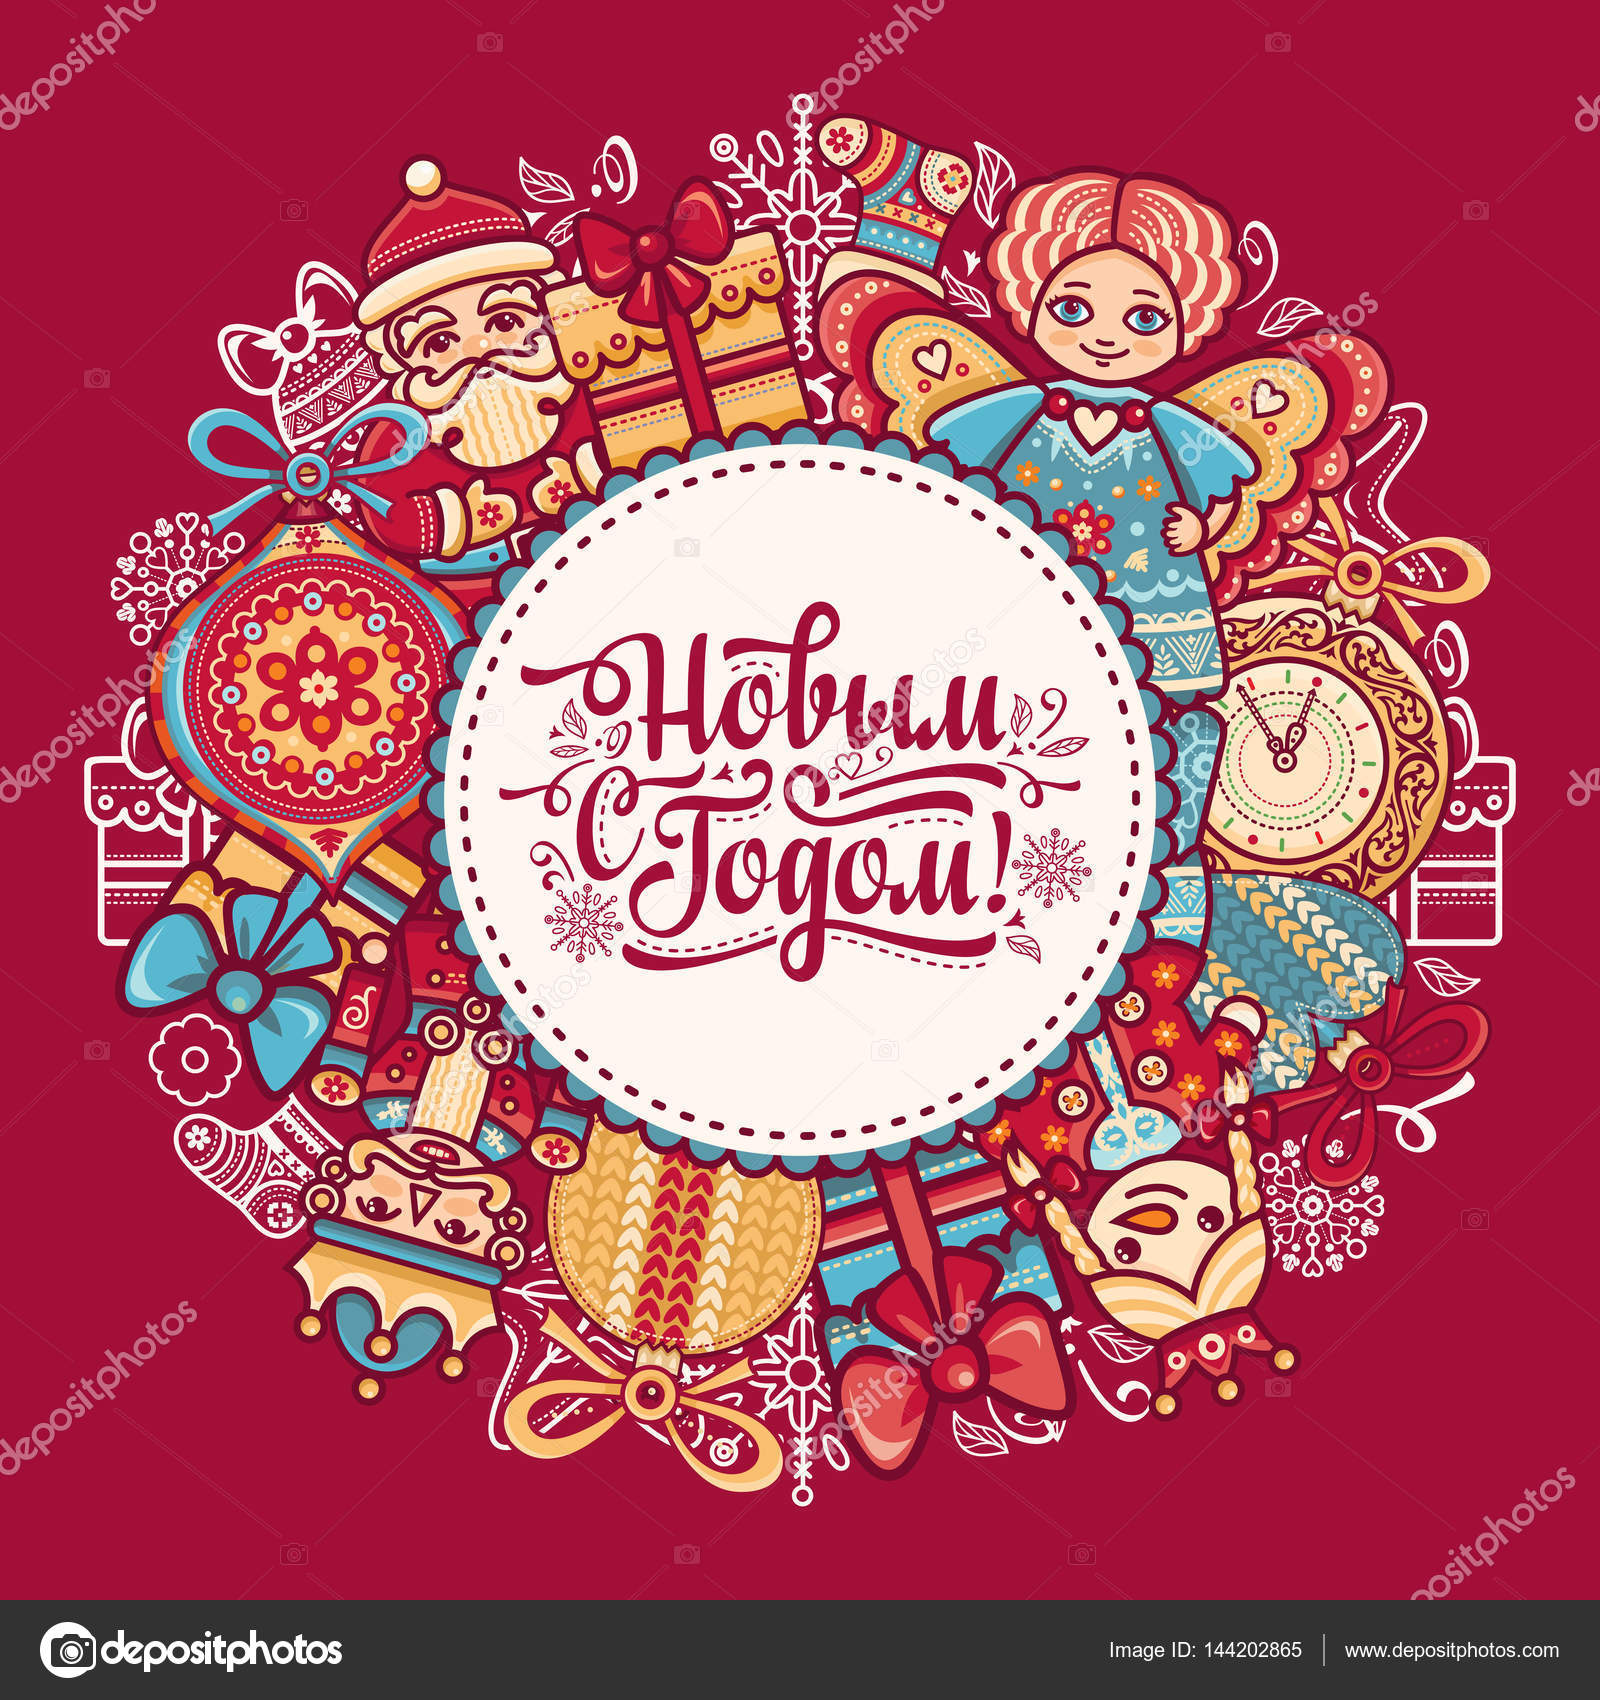 New year card holiday background phrase in russian language new year card holiday background phrase in russian language warm wishes for happy holidays in cyrillic english translation happy new year m4hsunfo